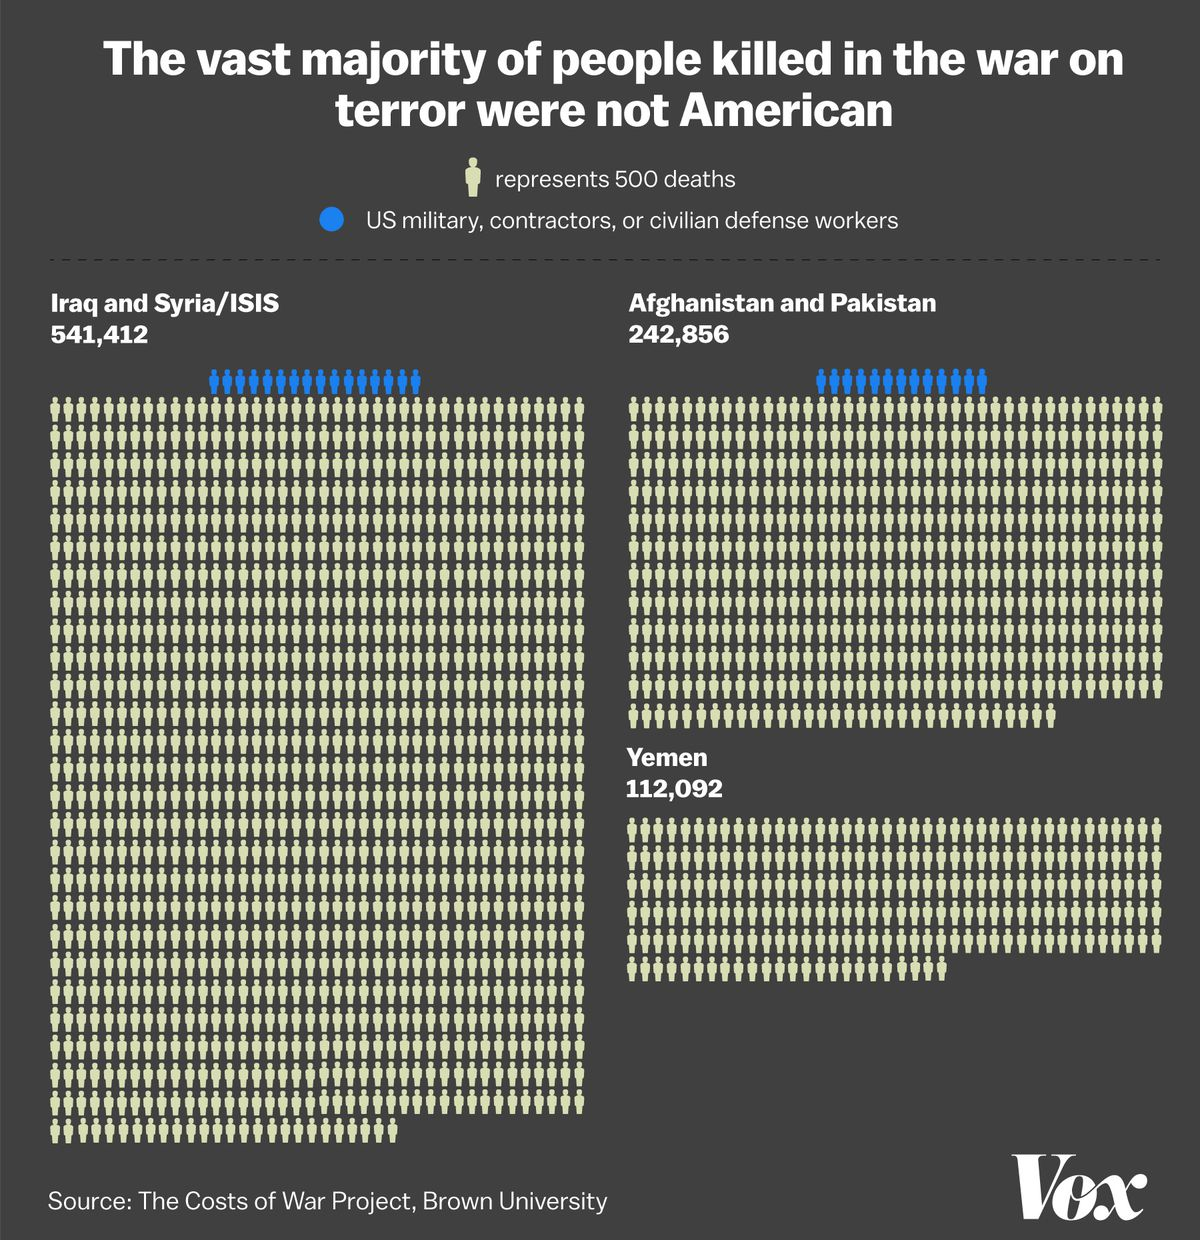 A chart showing the vast majority of the war on terror's 900,000 deaths were not American.